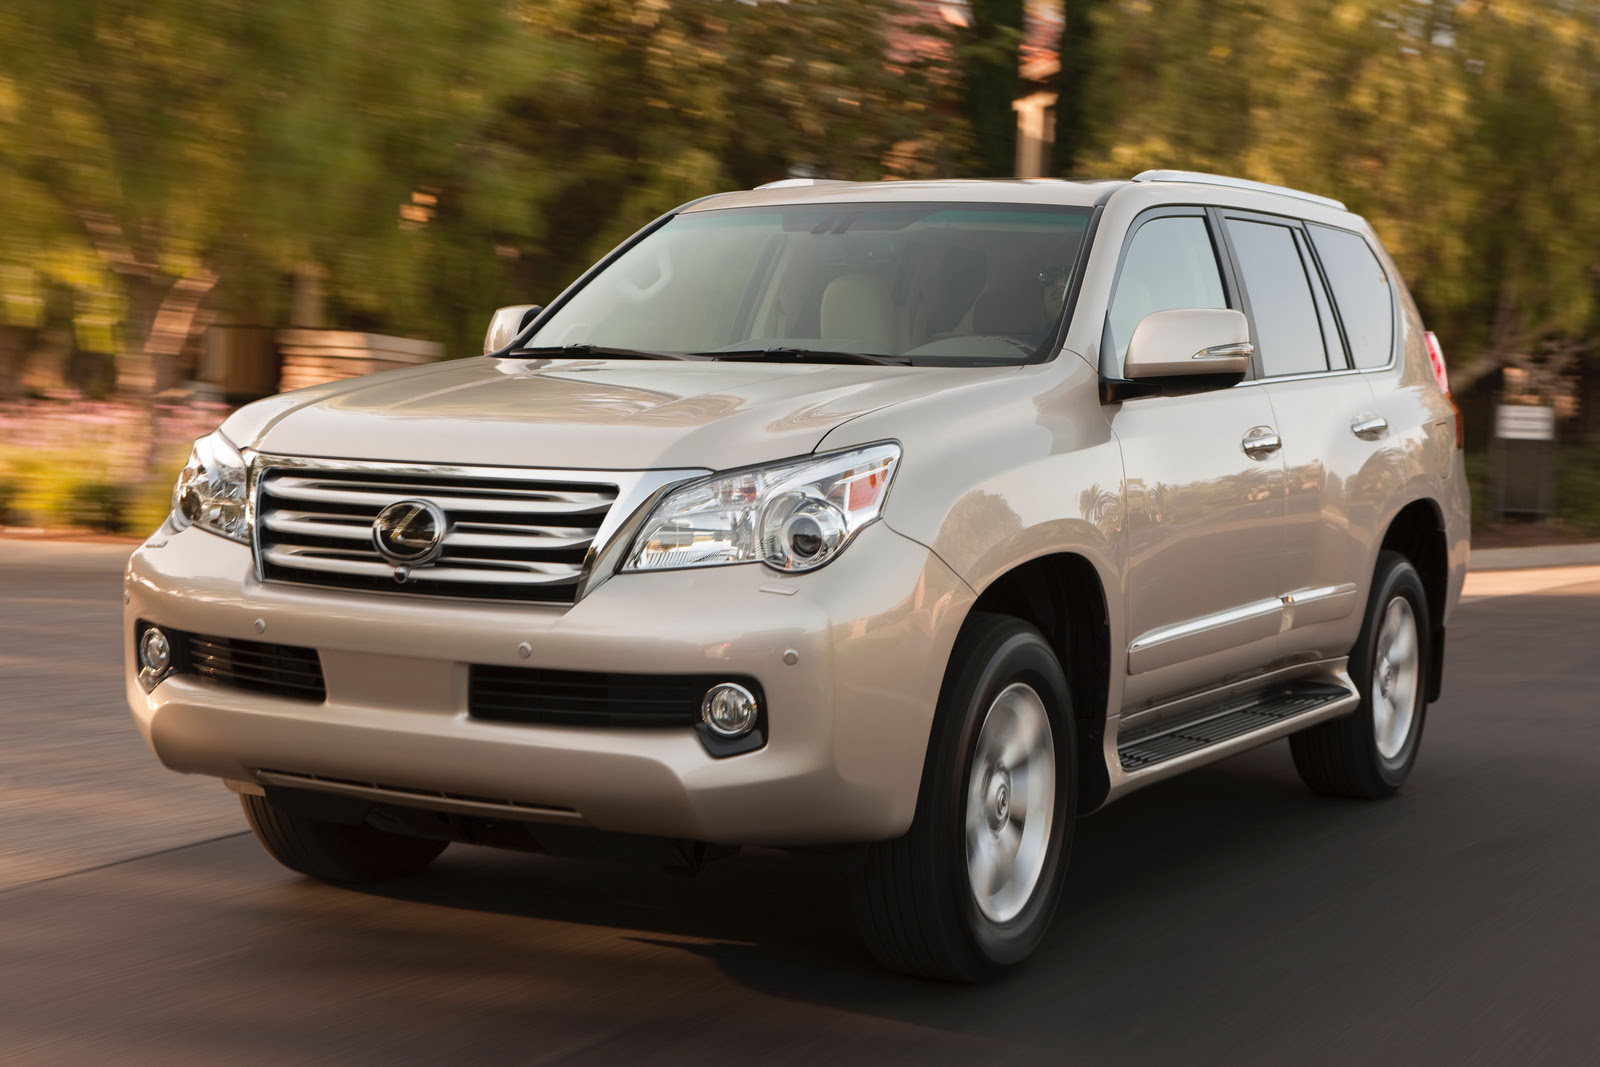 2013 Lexus GX 460 - Review - CarGurus